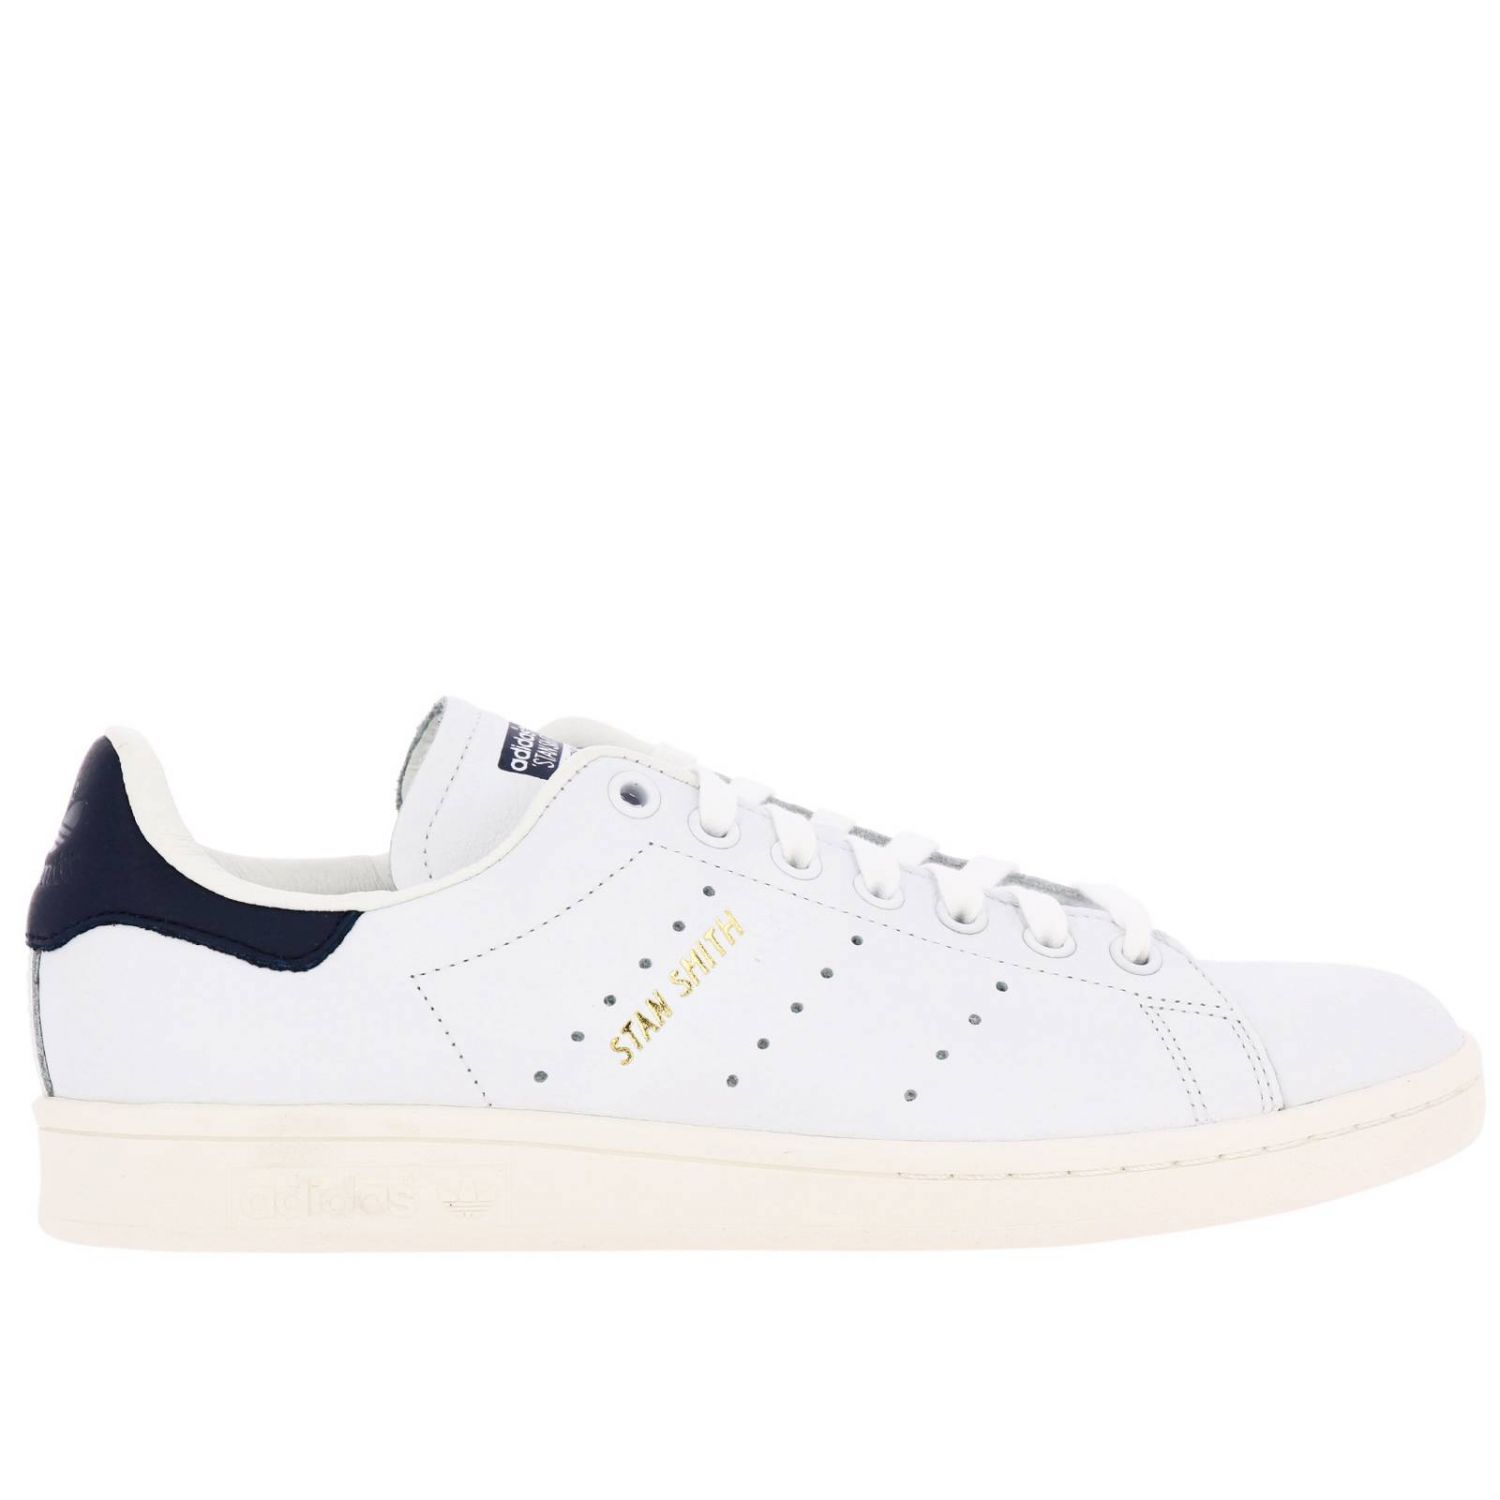 运动鞋 Adidas Originals: Adidas Originals Stan Smith 真皮运动鞋 白色 1